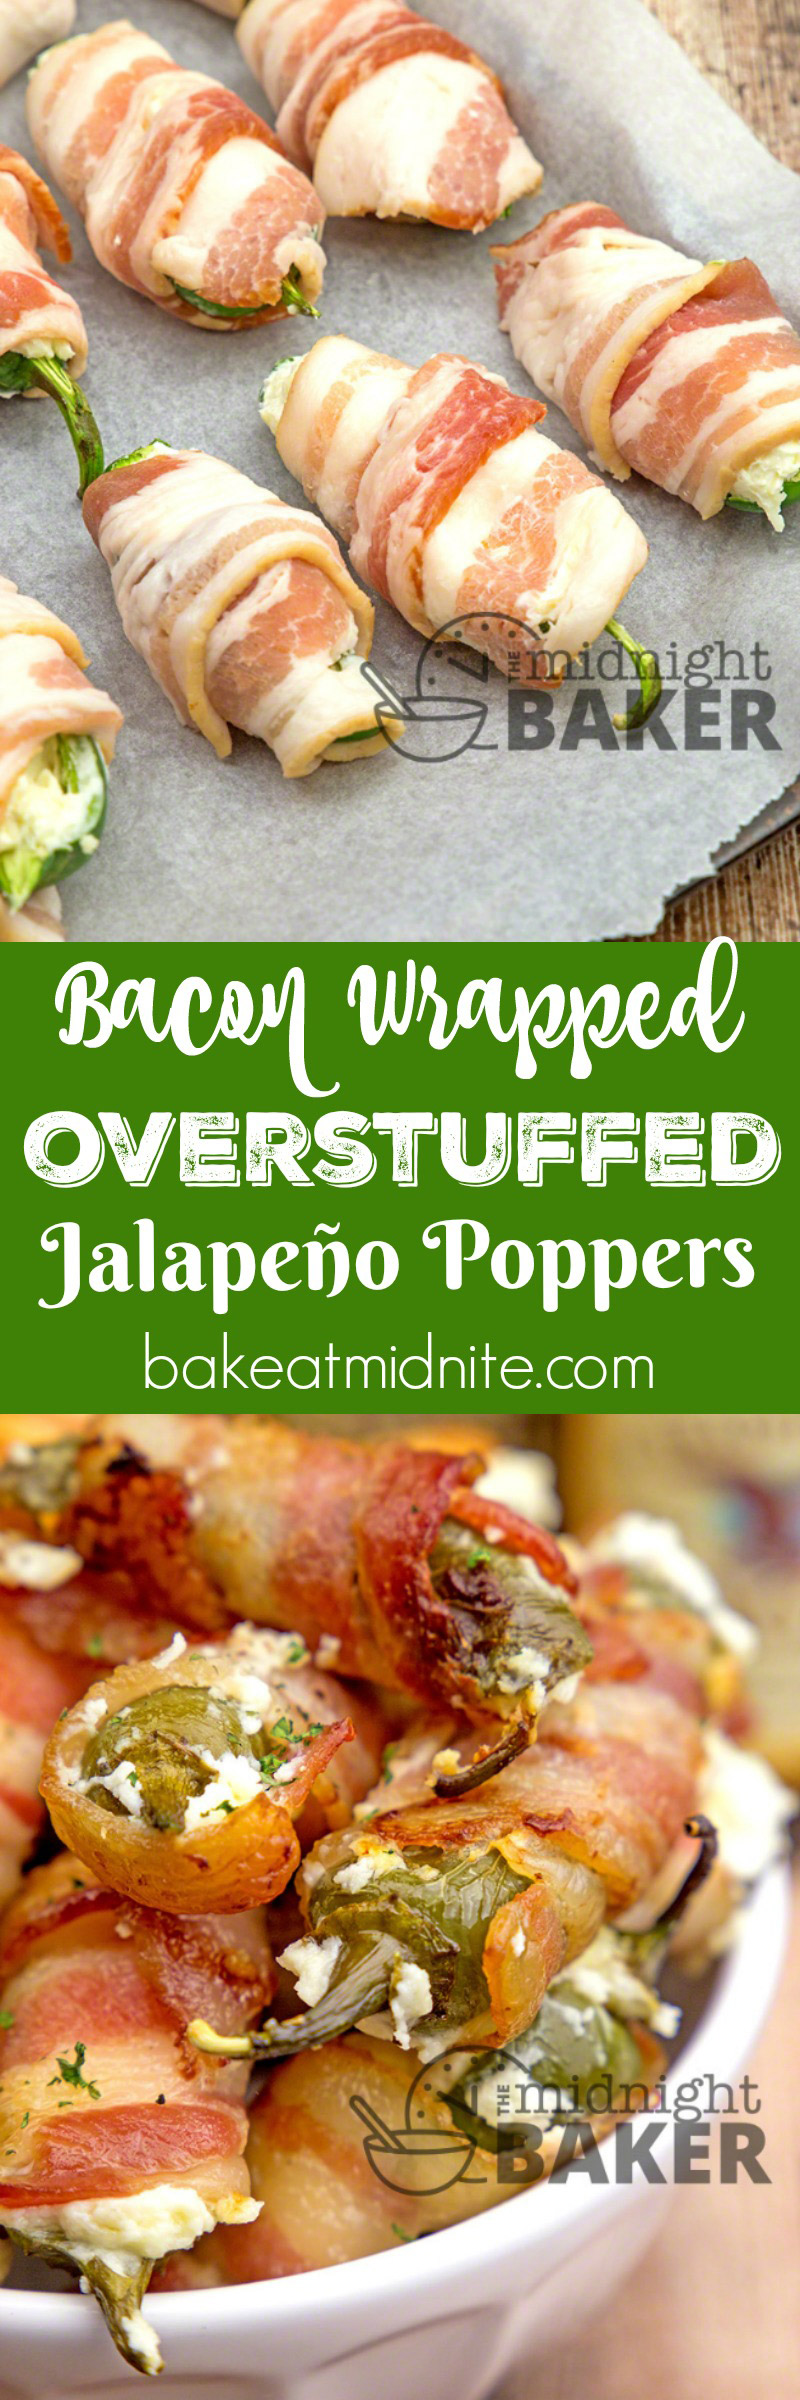 Jalapeño peppers stuffed to the max with a delicious cheese combo and wrapped in smoky bacon